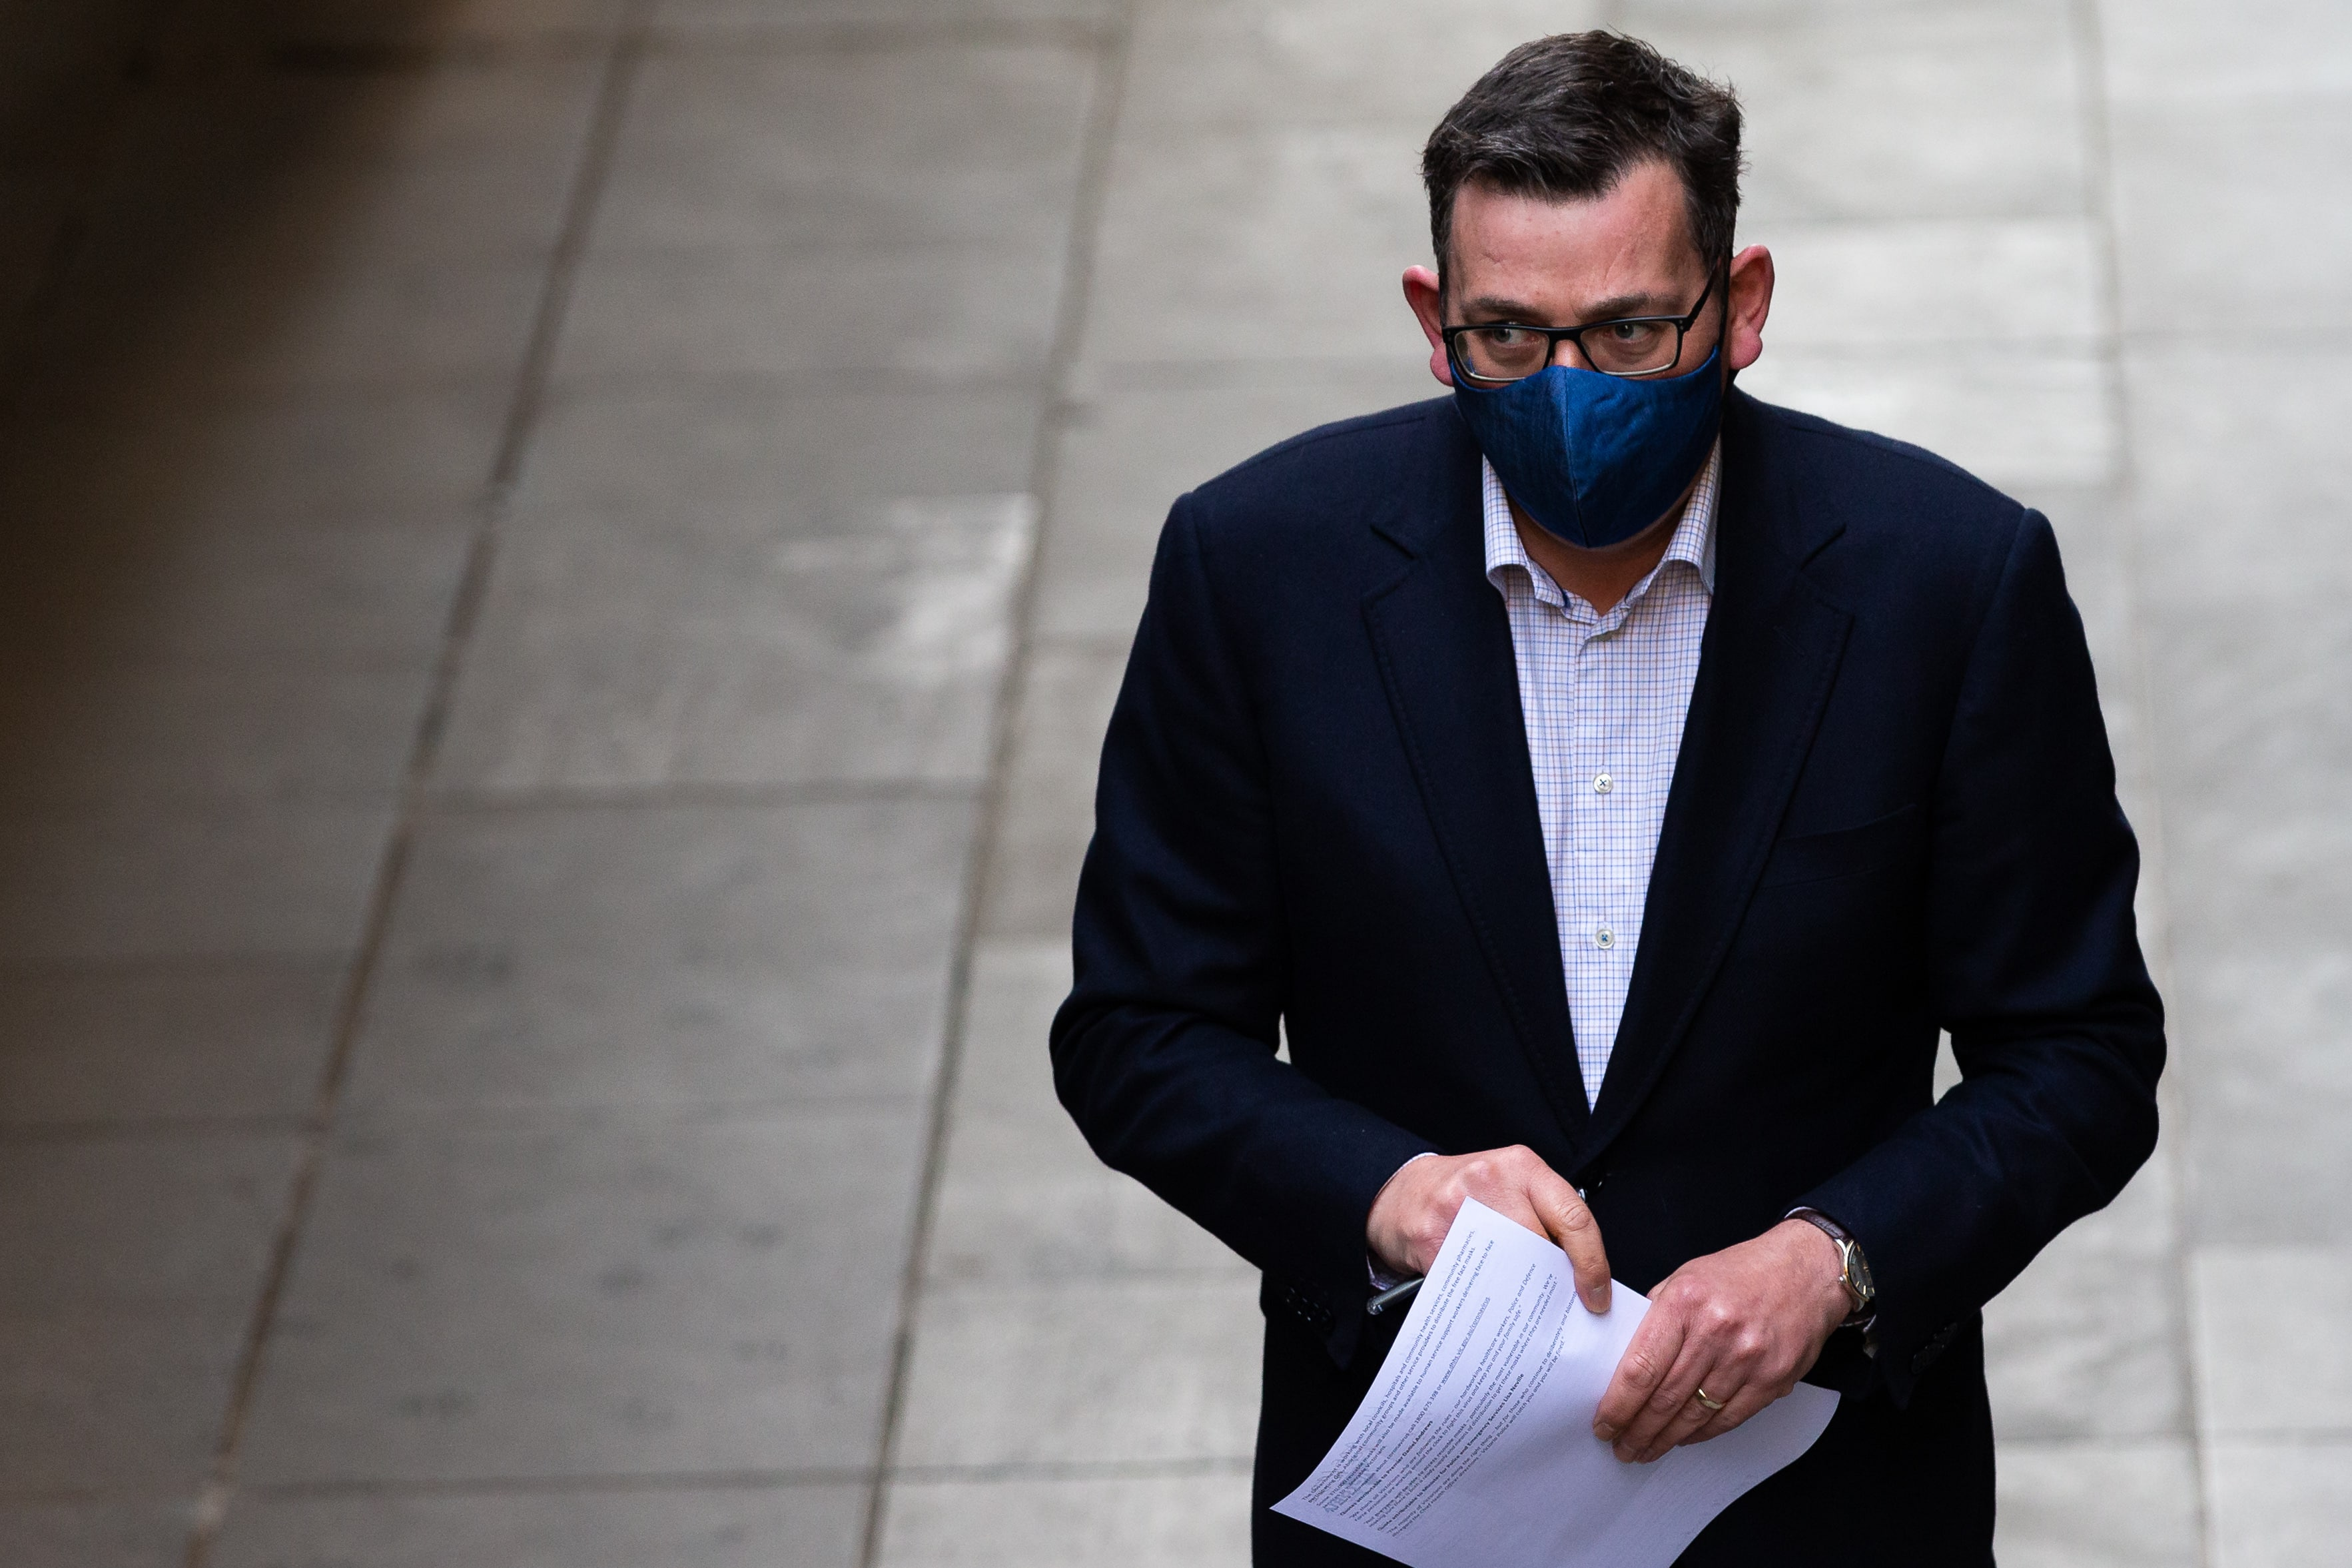 Premier Daniel Andrews wears a facemask as he arrives to updates the media during the daily COVID-19 press conference. A further 300 Coronavirus cases have been discovered overnight, and a further 6 deaths bringing Victoria's active cases to over 3600.